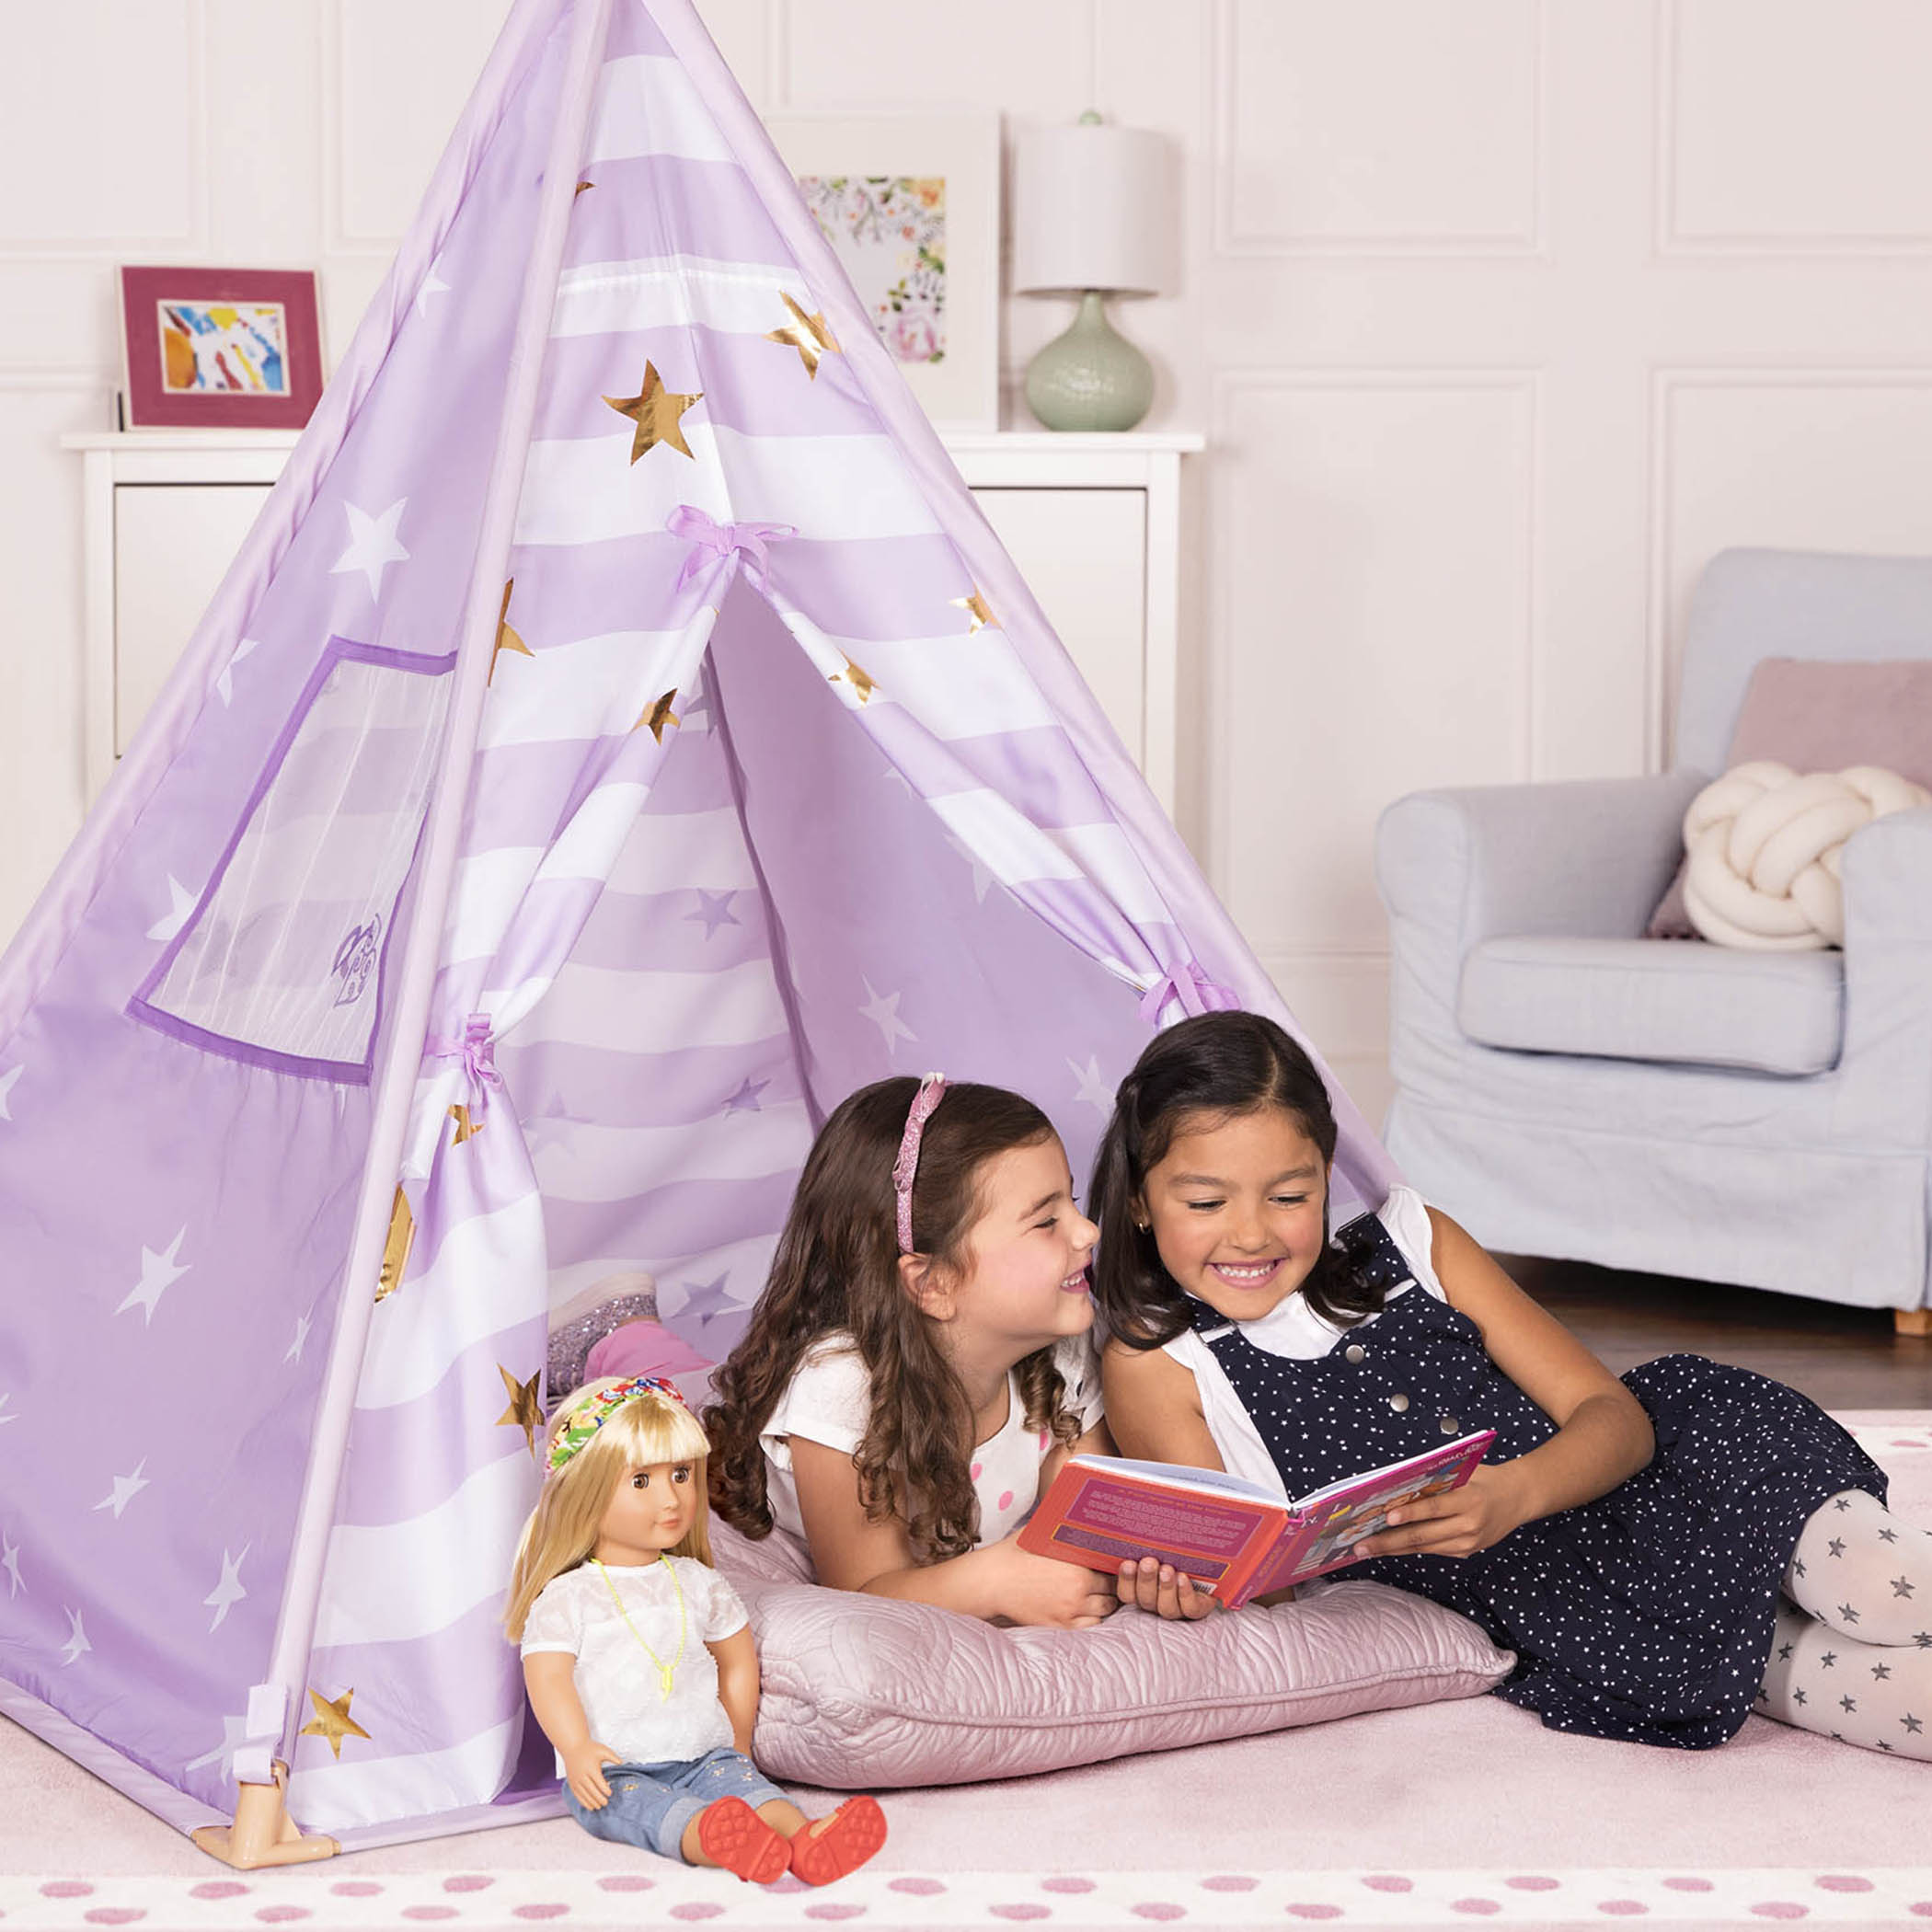 Lilac Suite Teepee two girls and Rowan doll playing inside